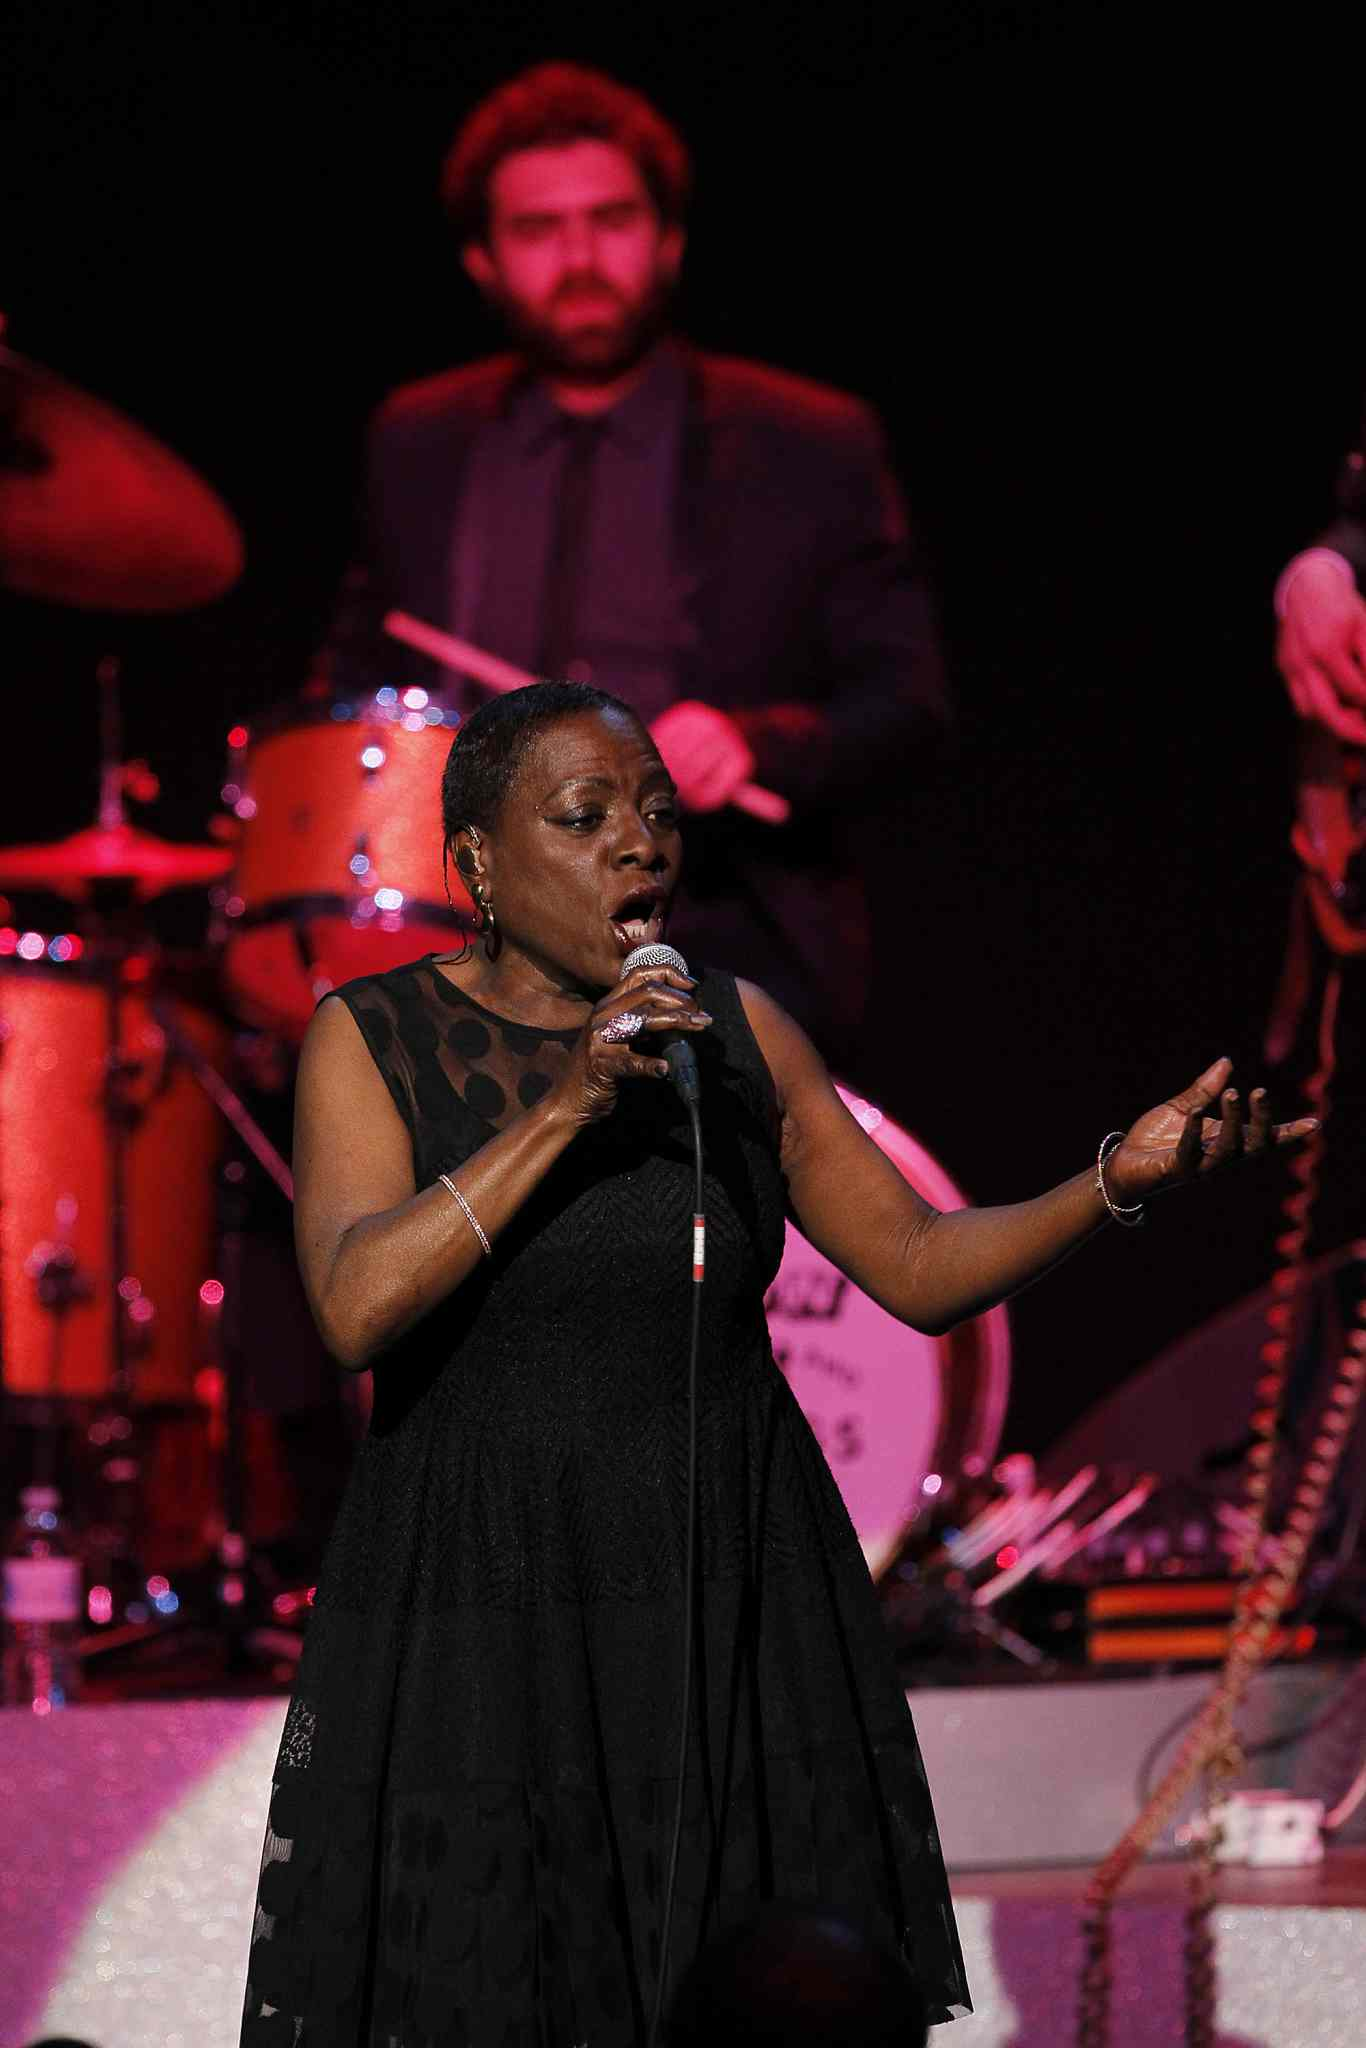 Sharon Jones and The Dap-Kings perform at the Burton Cummings Theatre. Jones, 57, broke into the music business with her band 12 years ago after decades as a backup singer. Before that, she was a corrections officer.